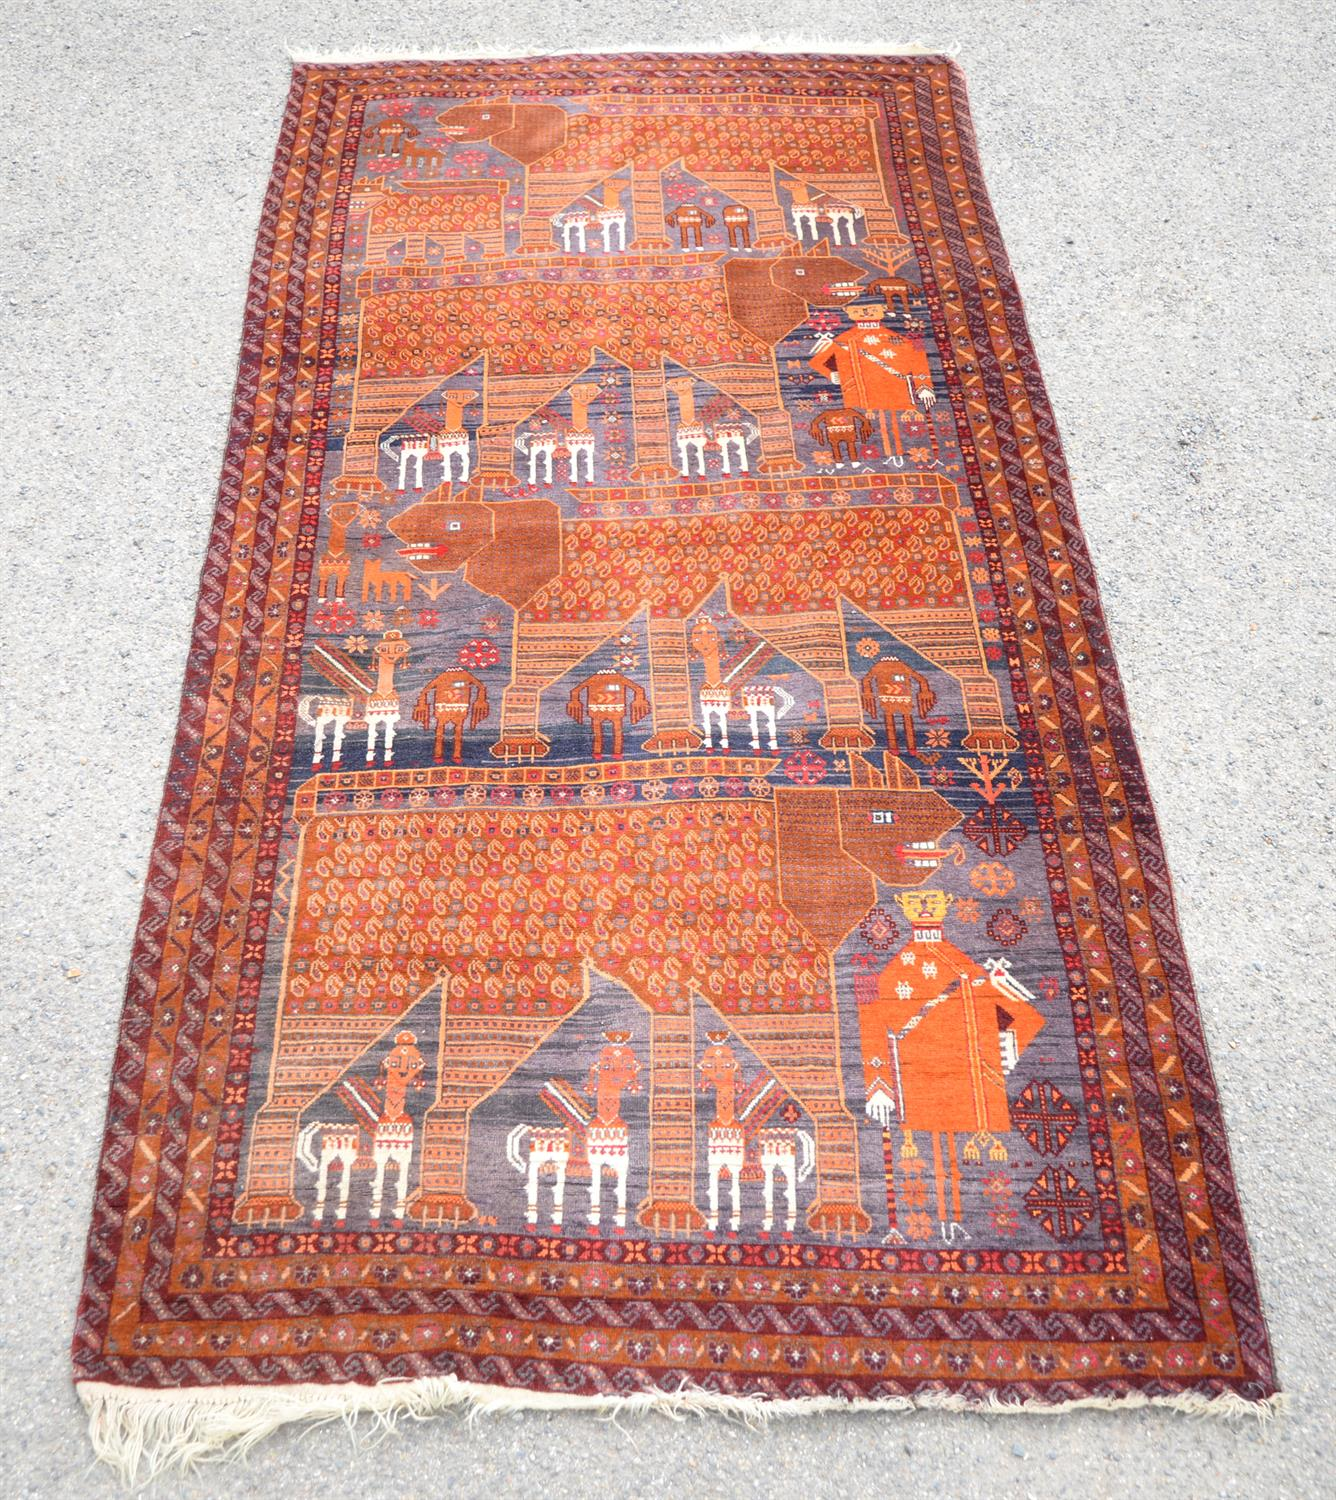 Pakistan rug in the Afghan style, decorated with camels, figures and boteh within floral borders,